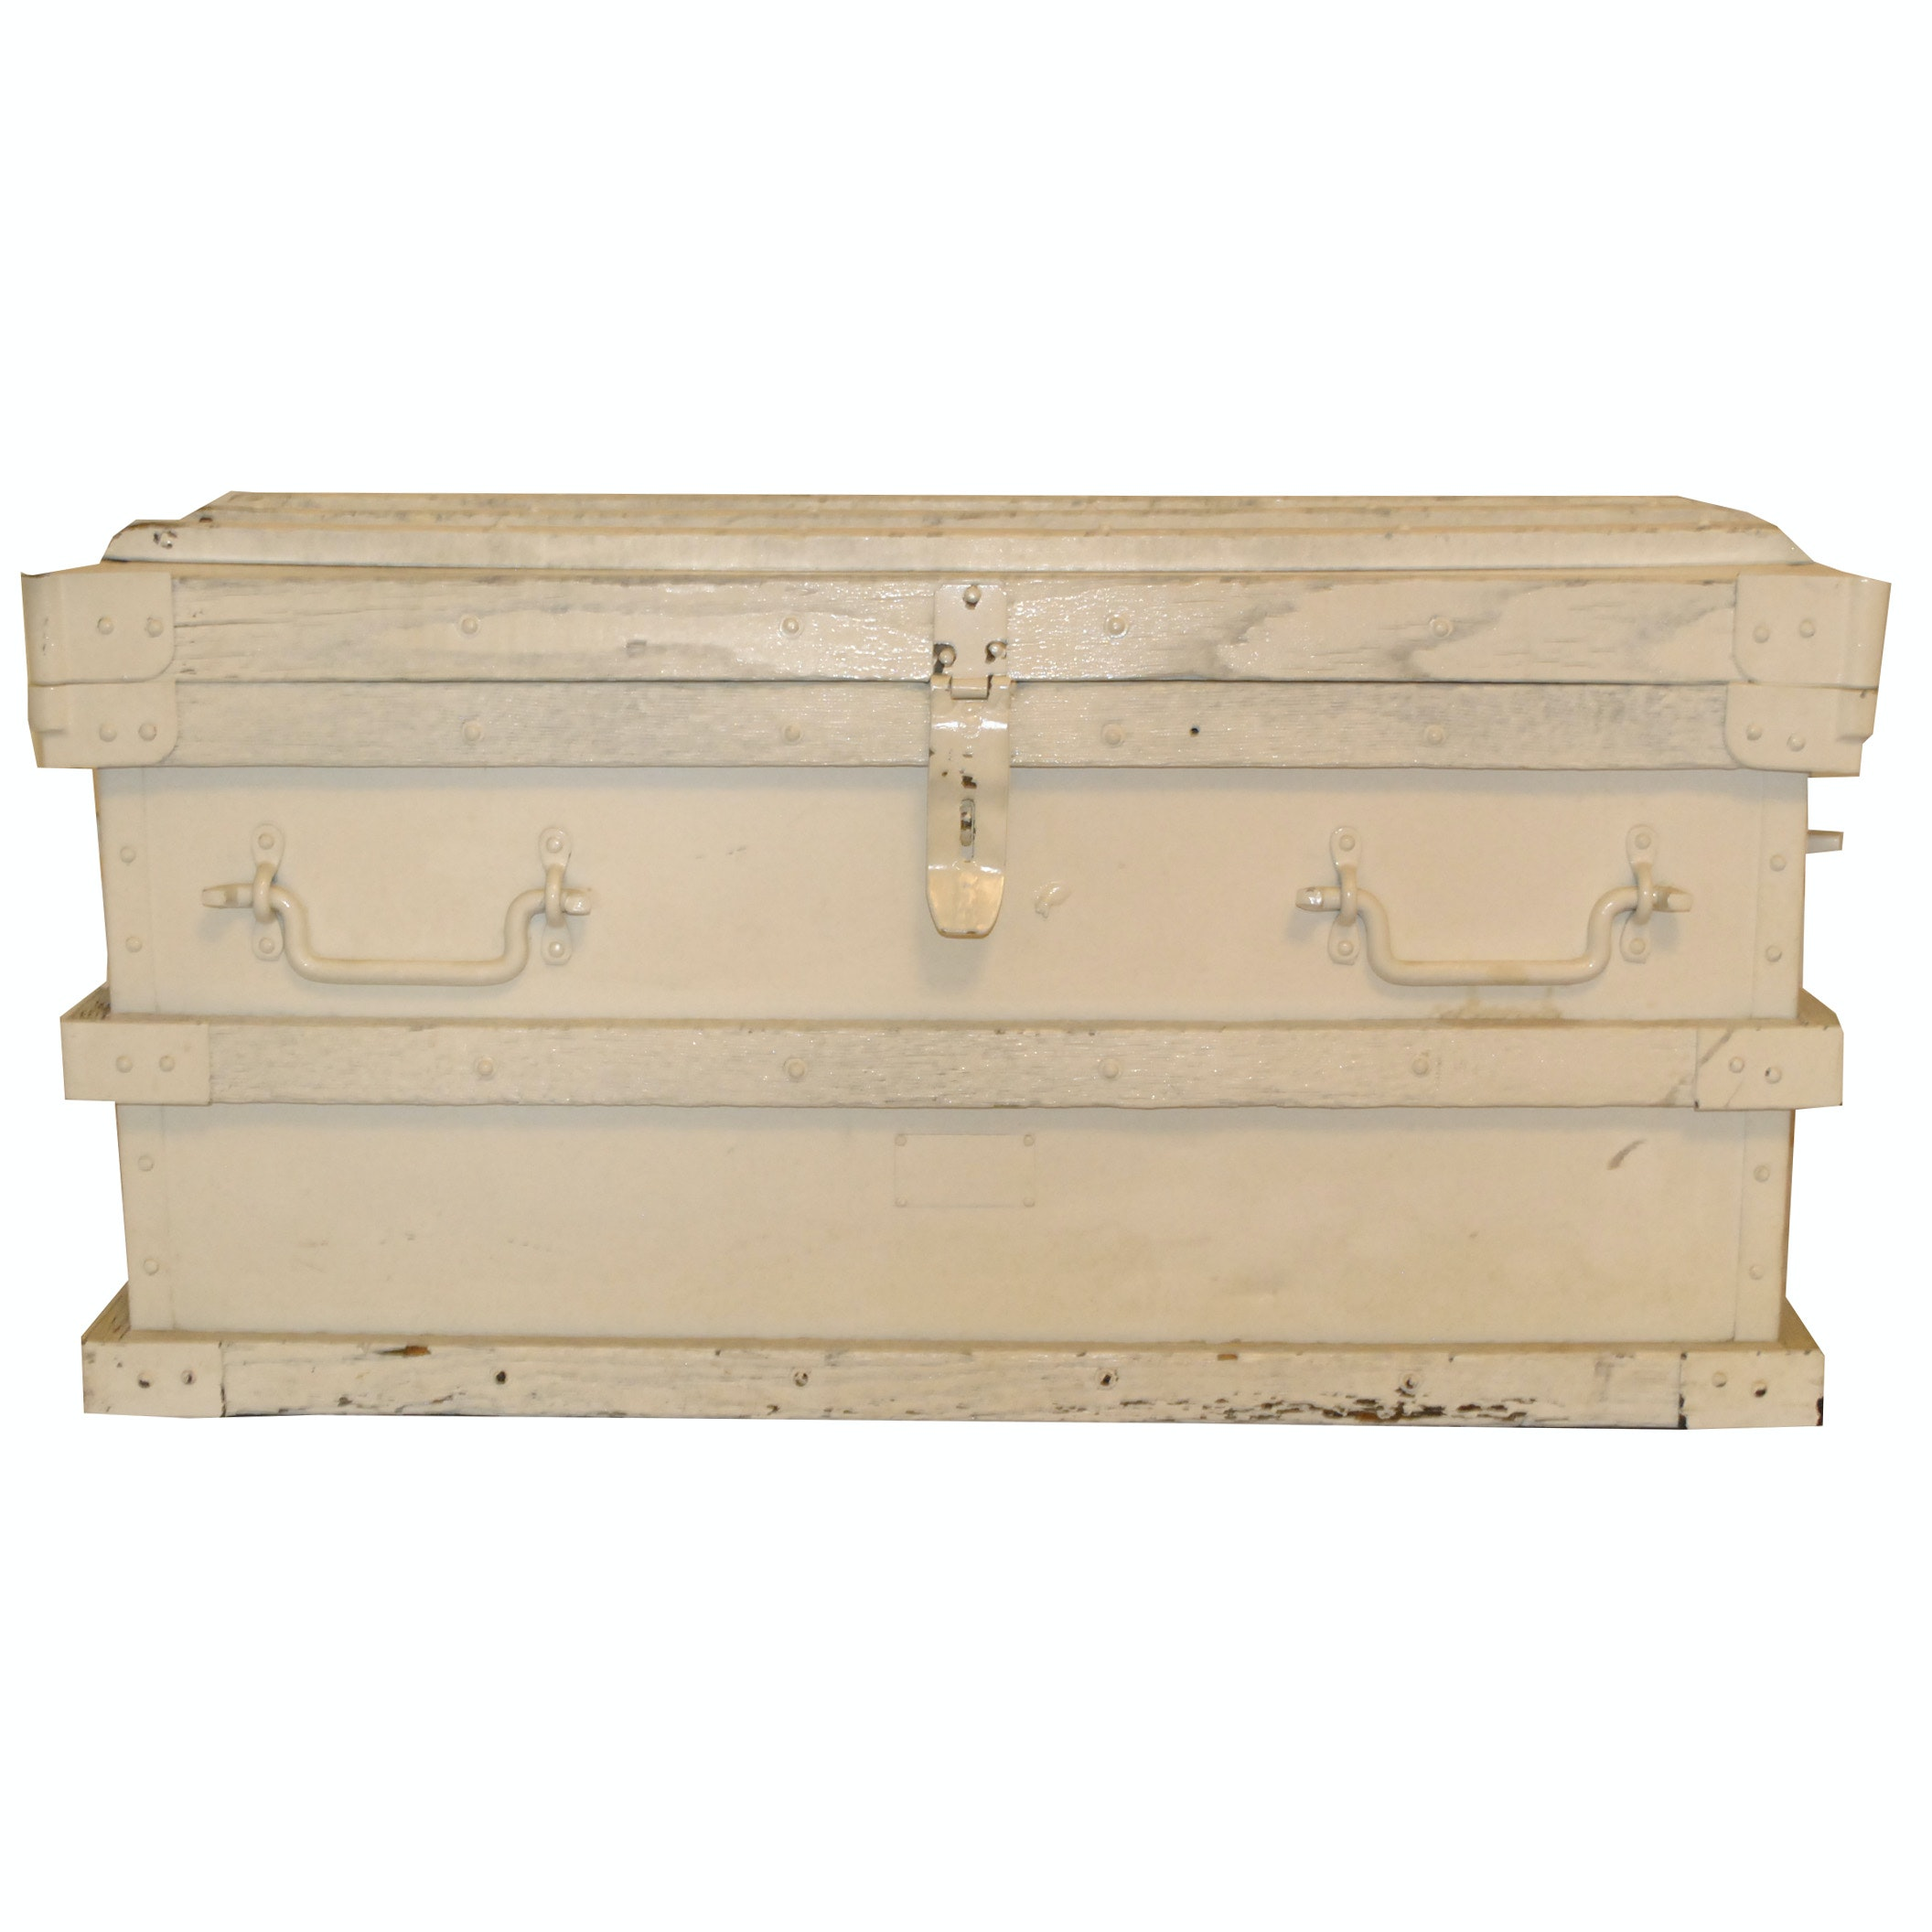 Antique Tool Chest with Later White Paint